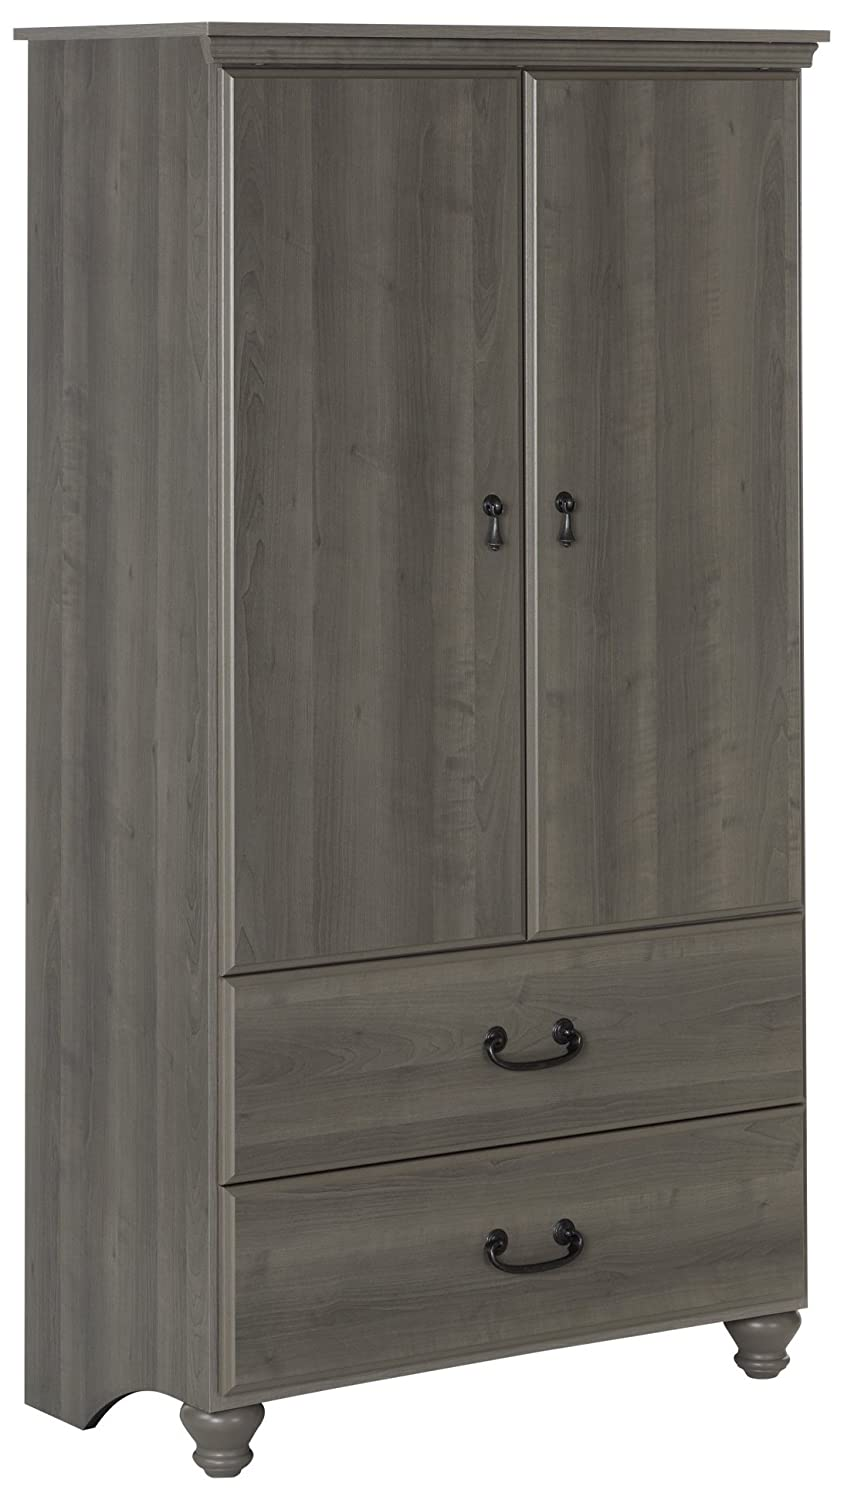 South Shore 2-Door Armoire with Adjustable Shelves and Storage Drawers, Gray Maple 10243